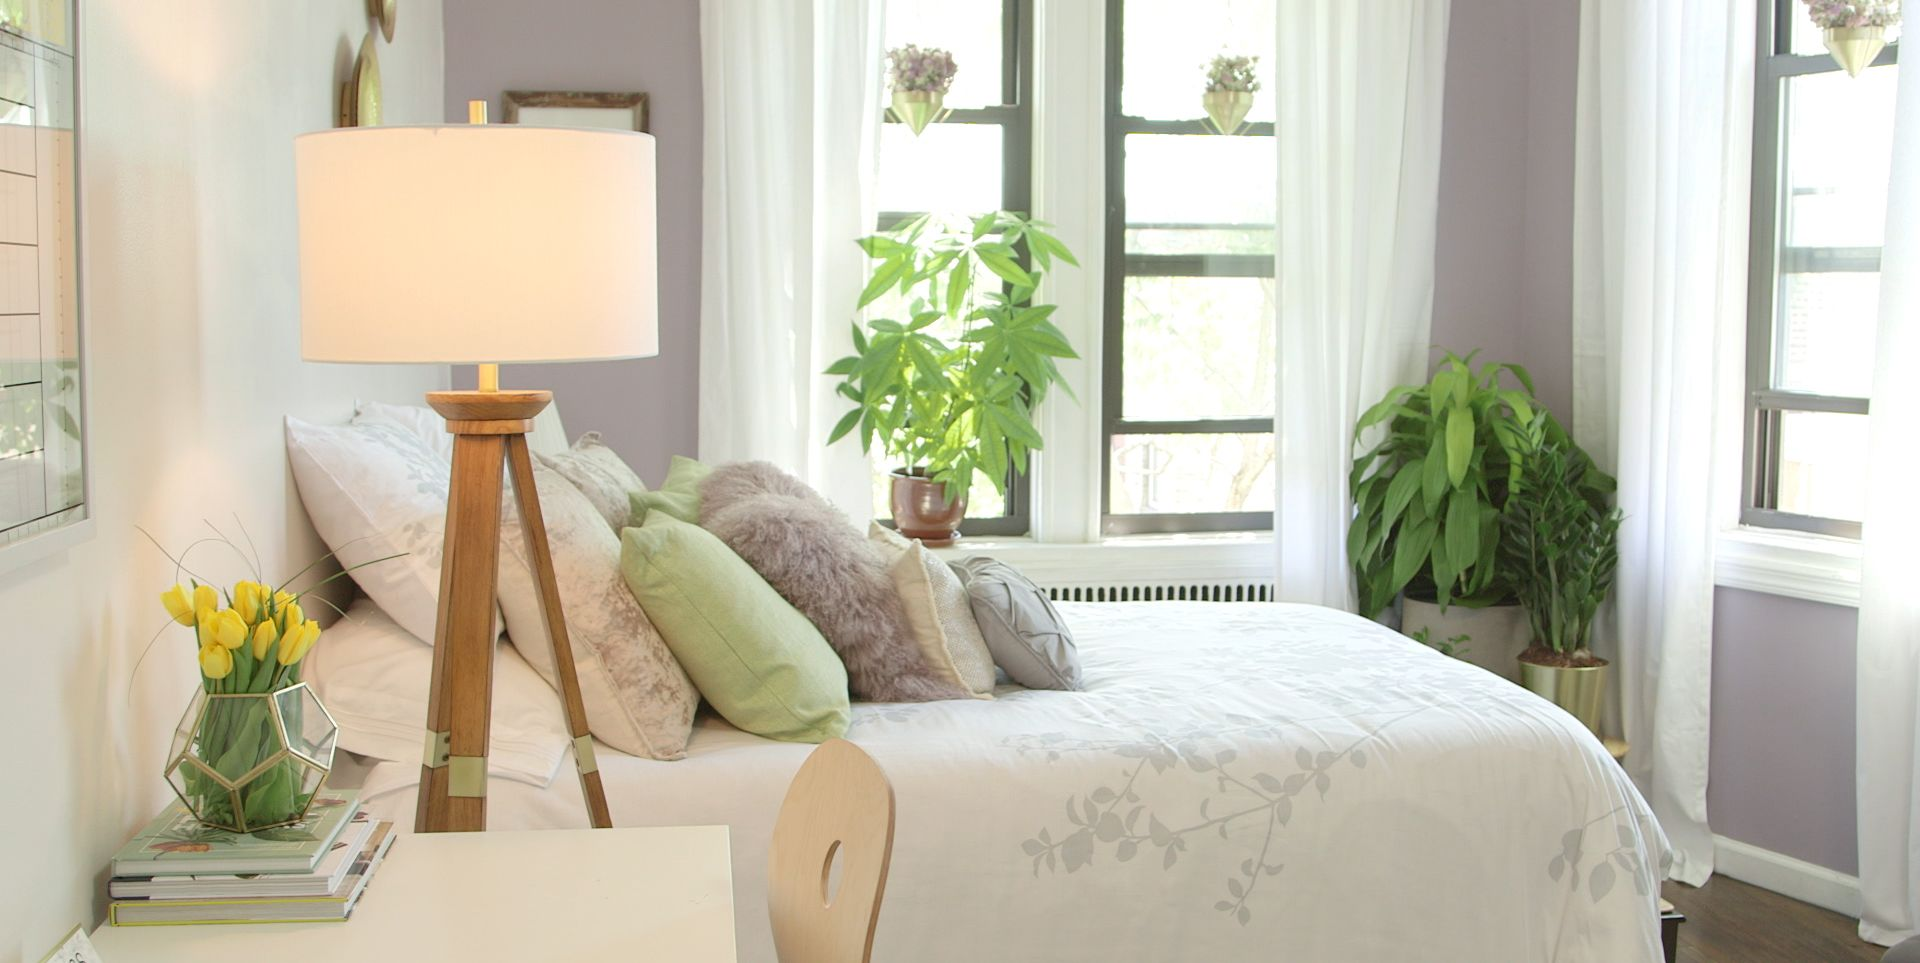 6 Pet-Friendly Decorations for a Small Apartment